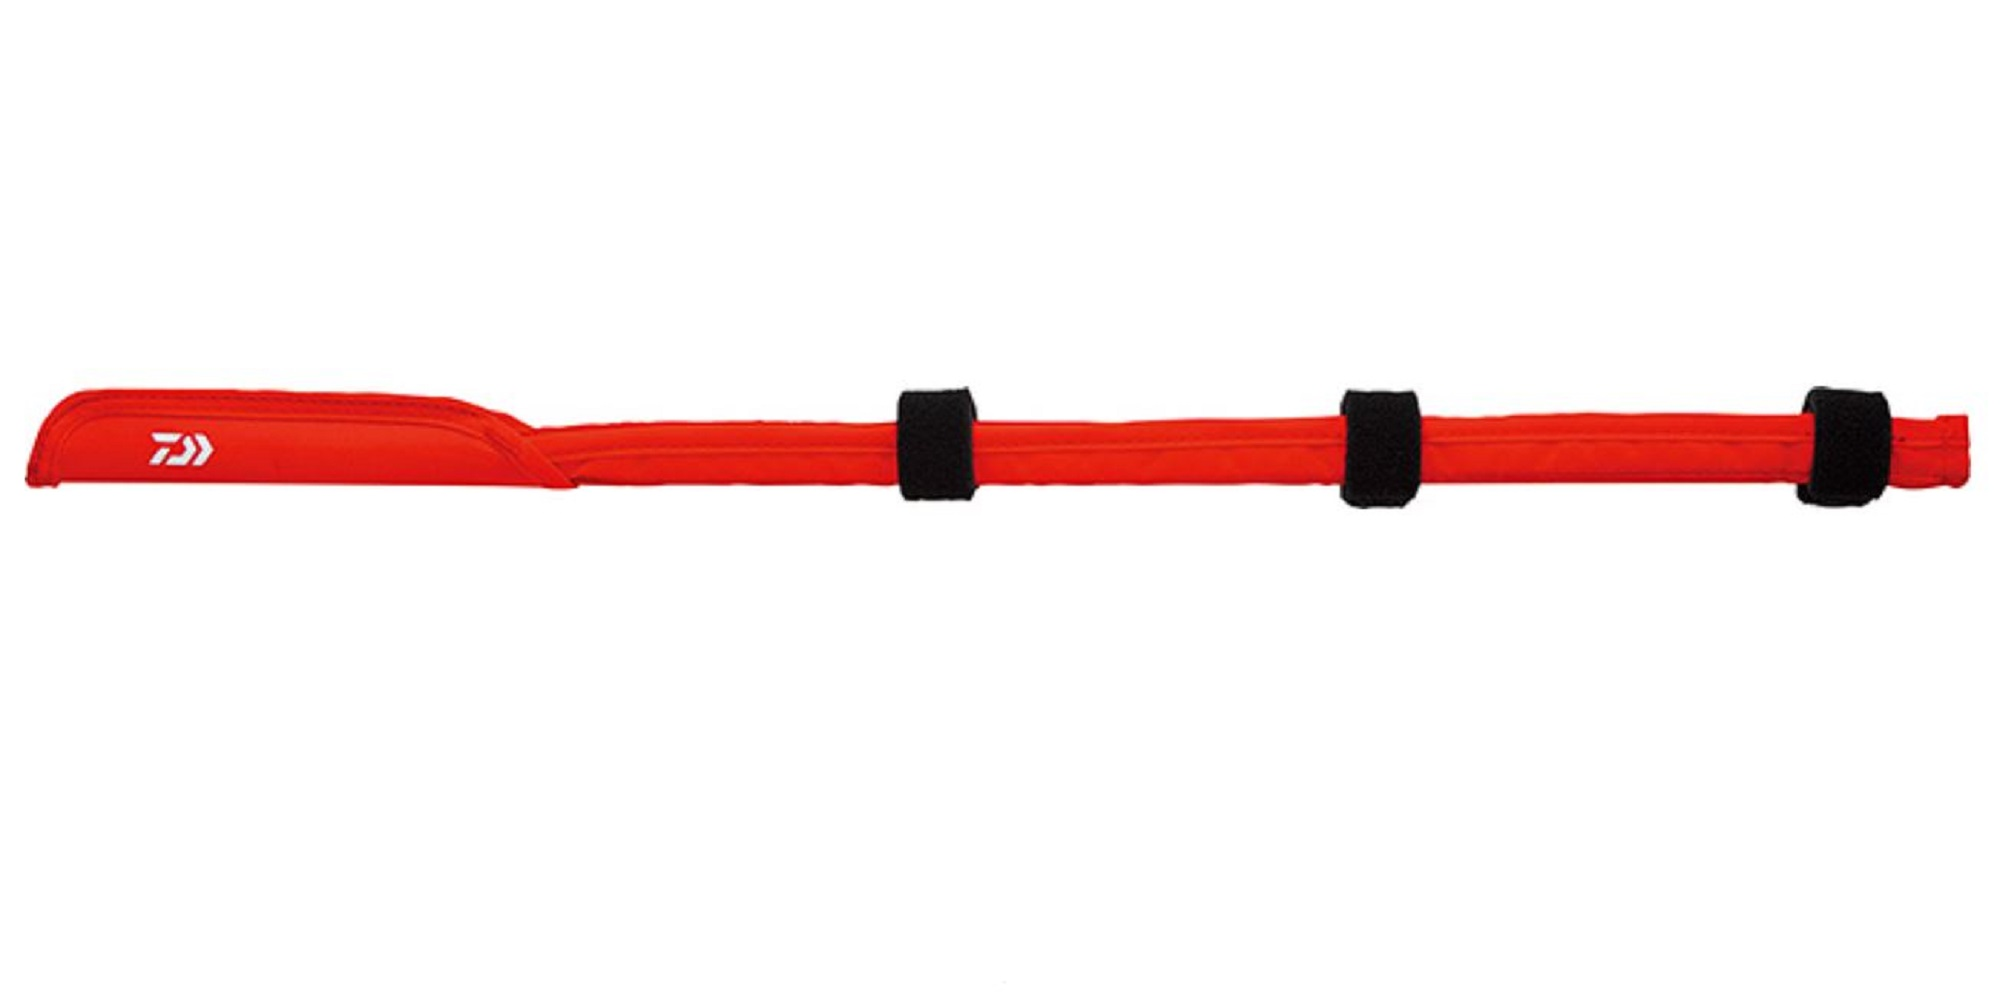 Sale Daiwa Rod Tip Protector Cover Long 55 x 2.5 cm Red (7921)